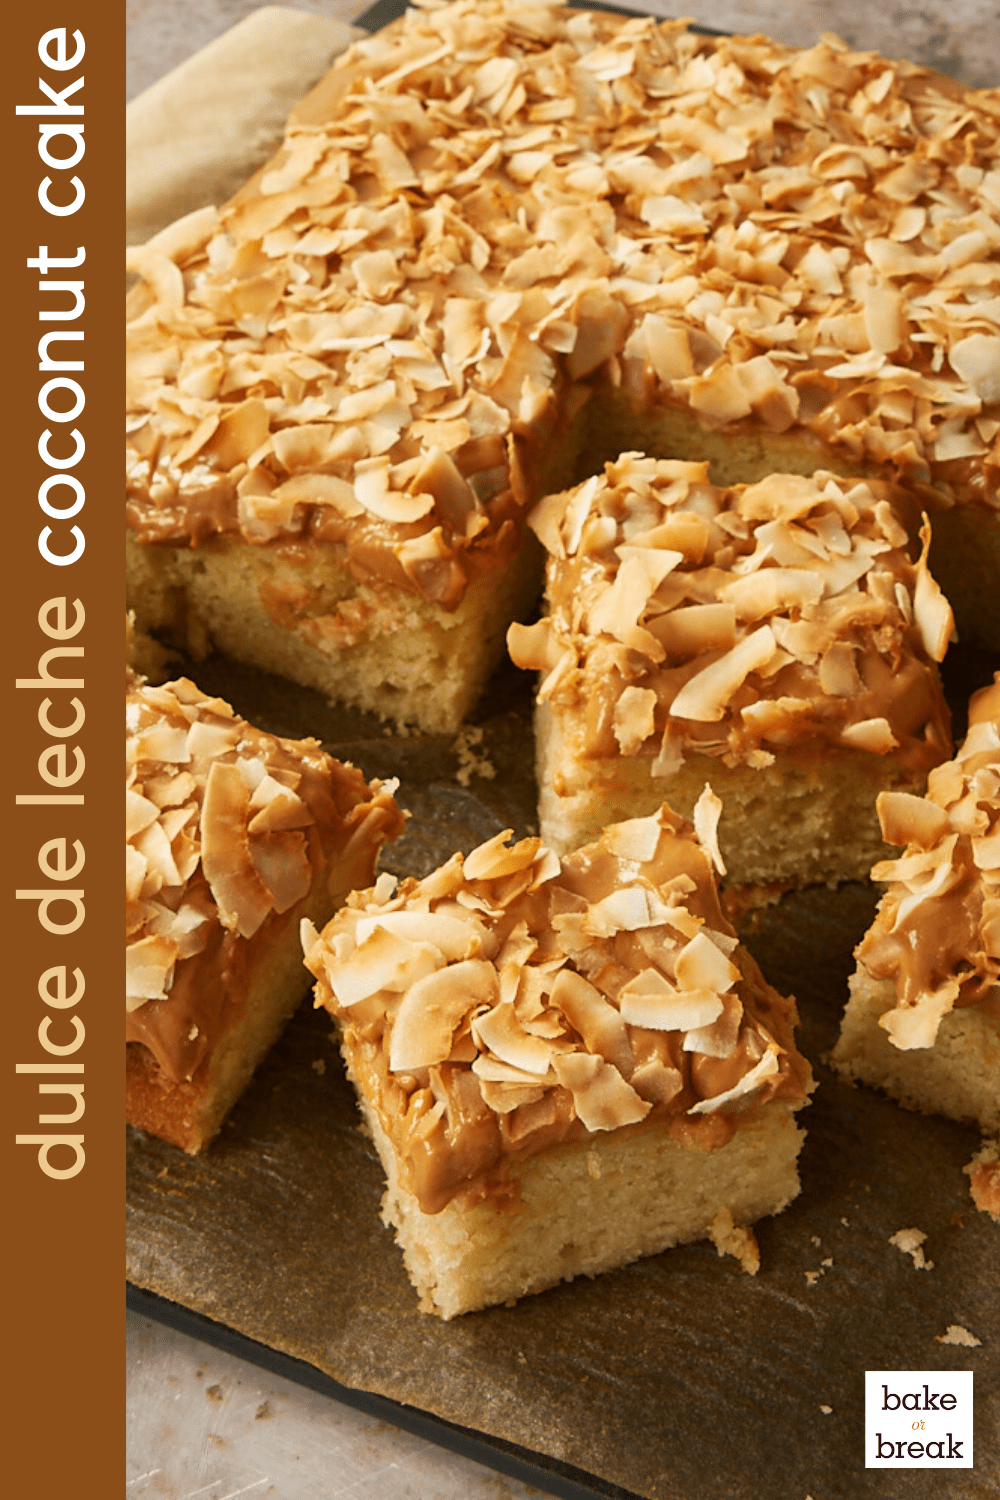 Coconut Cake with Dulce de Leche Frosting